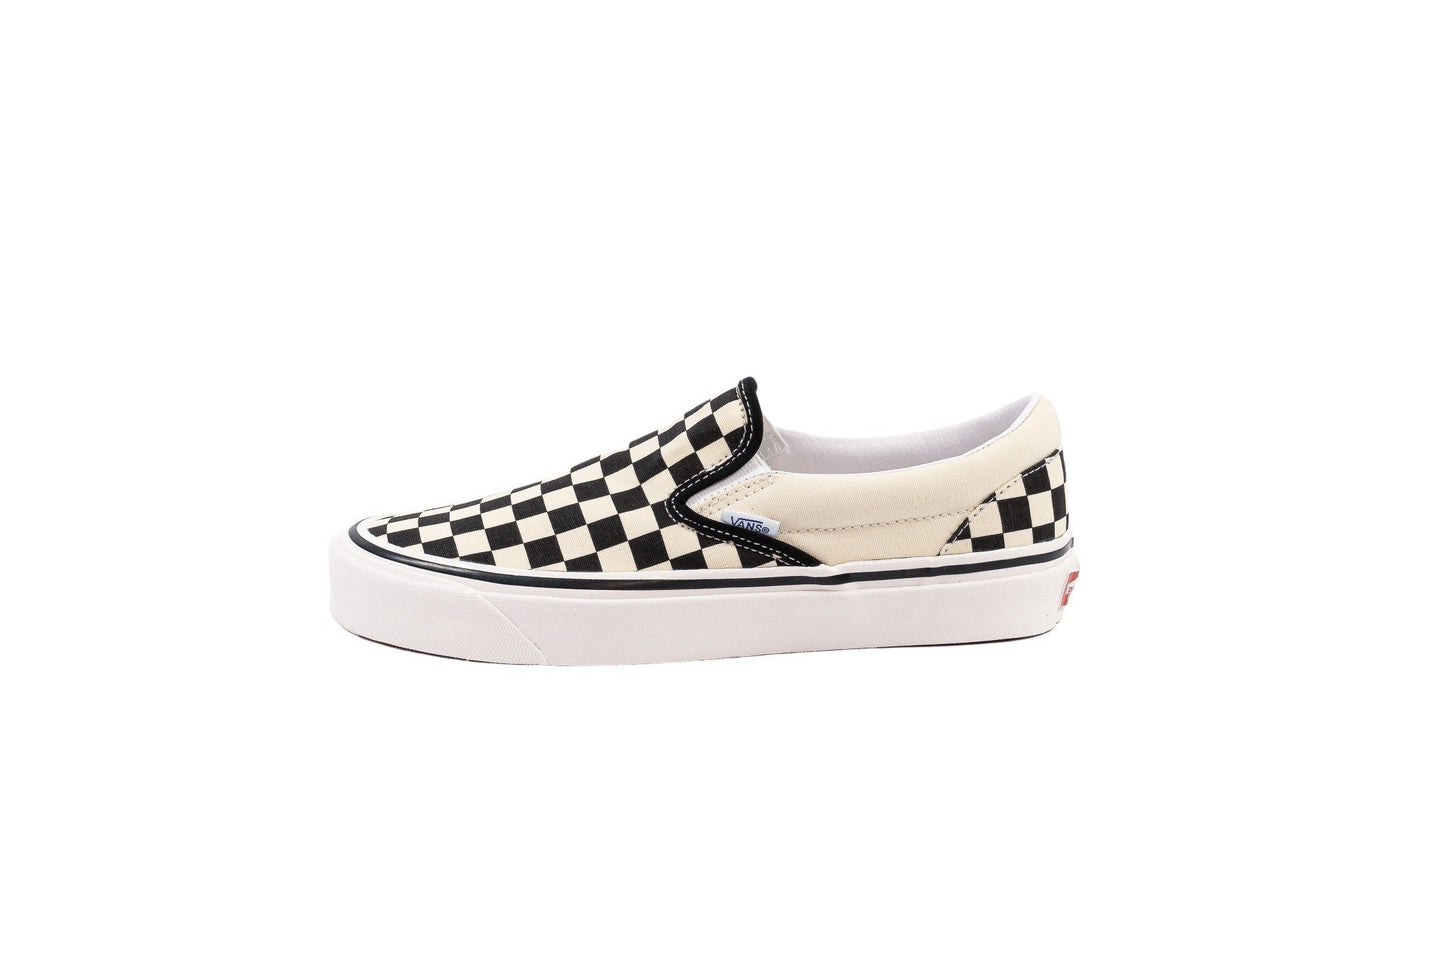 Vans Classic Slip-On 98 DX - Goldjunge-Store